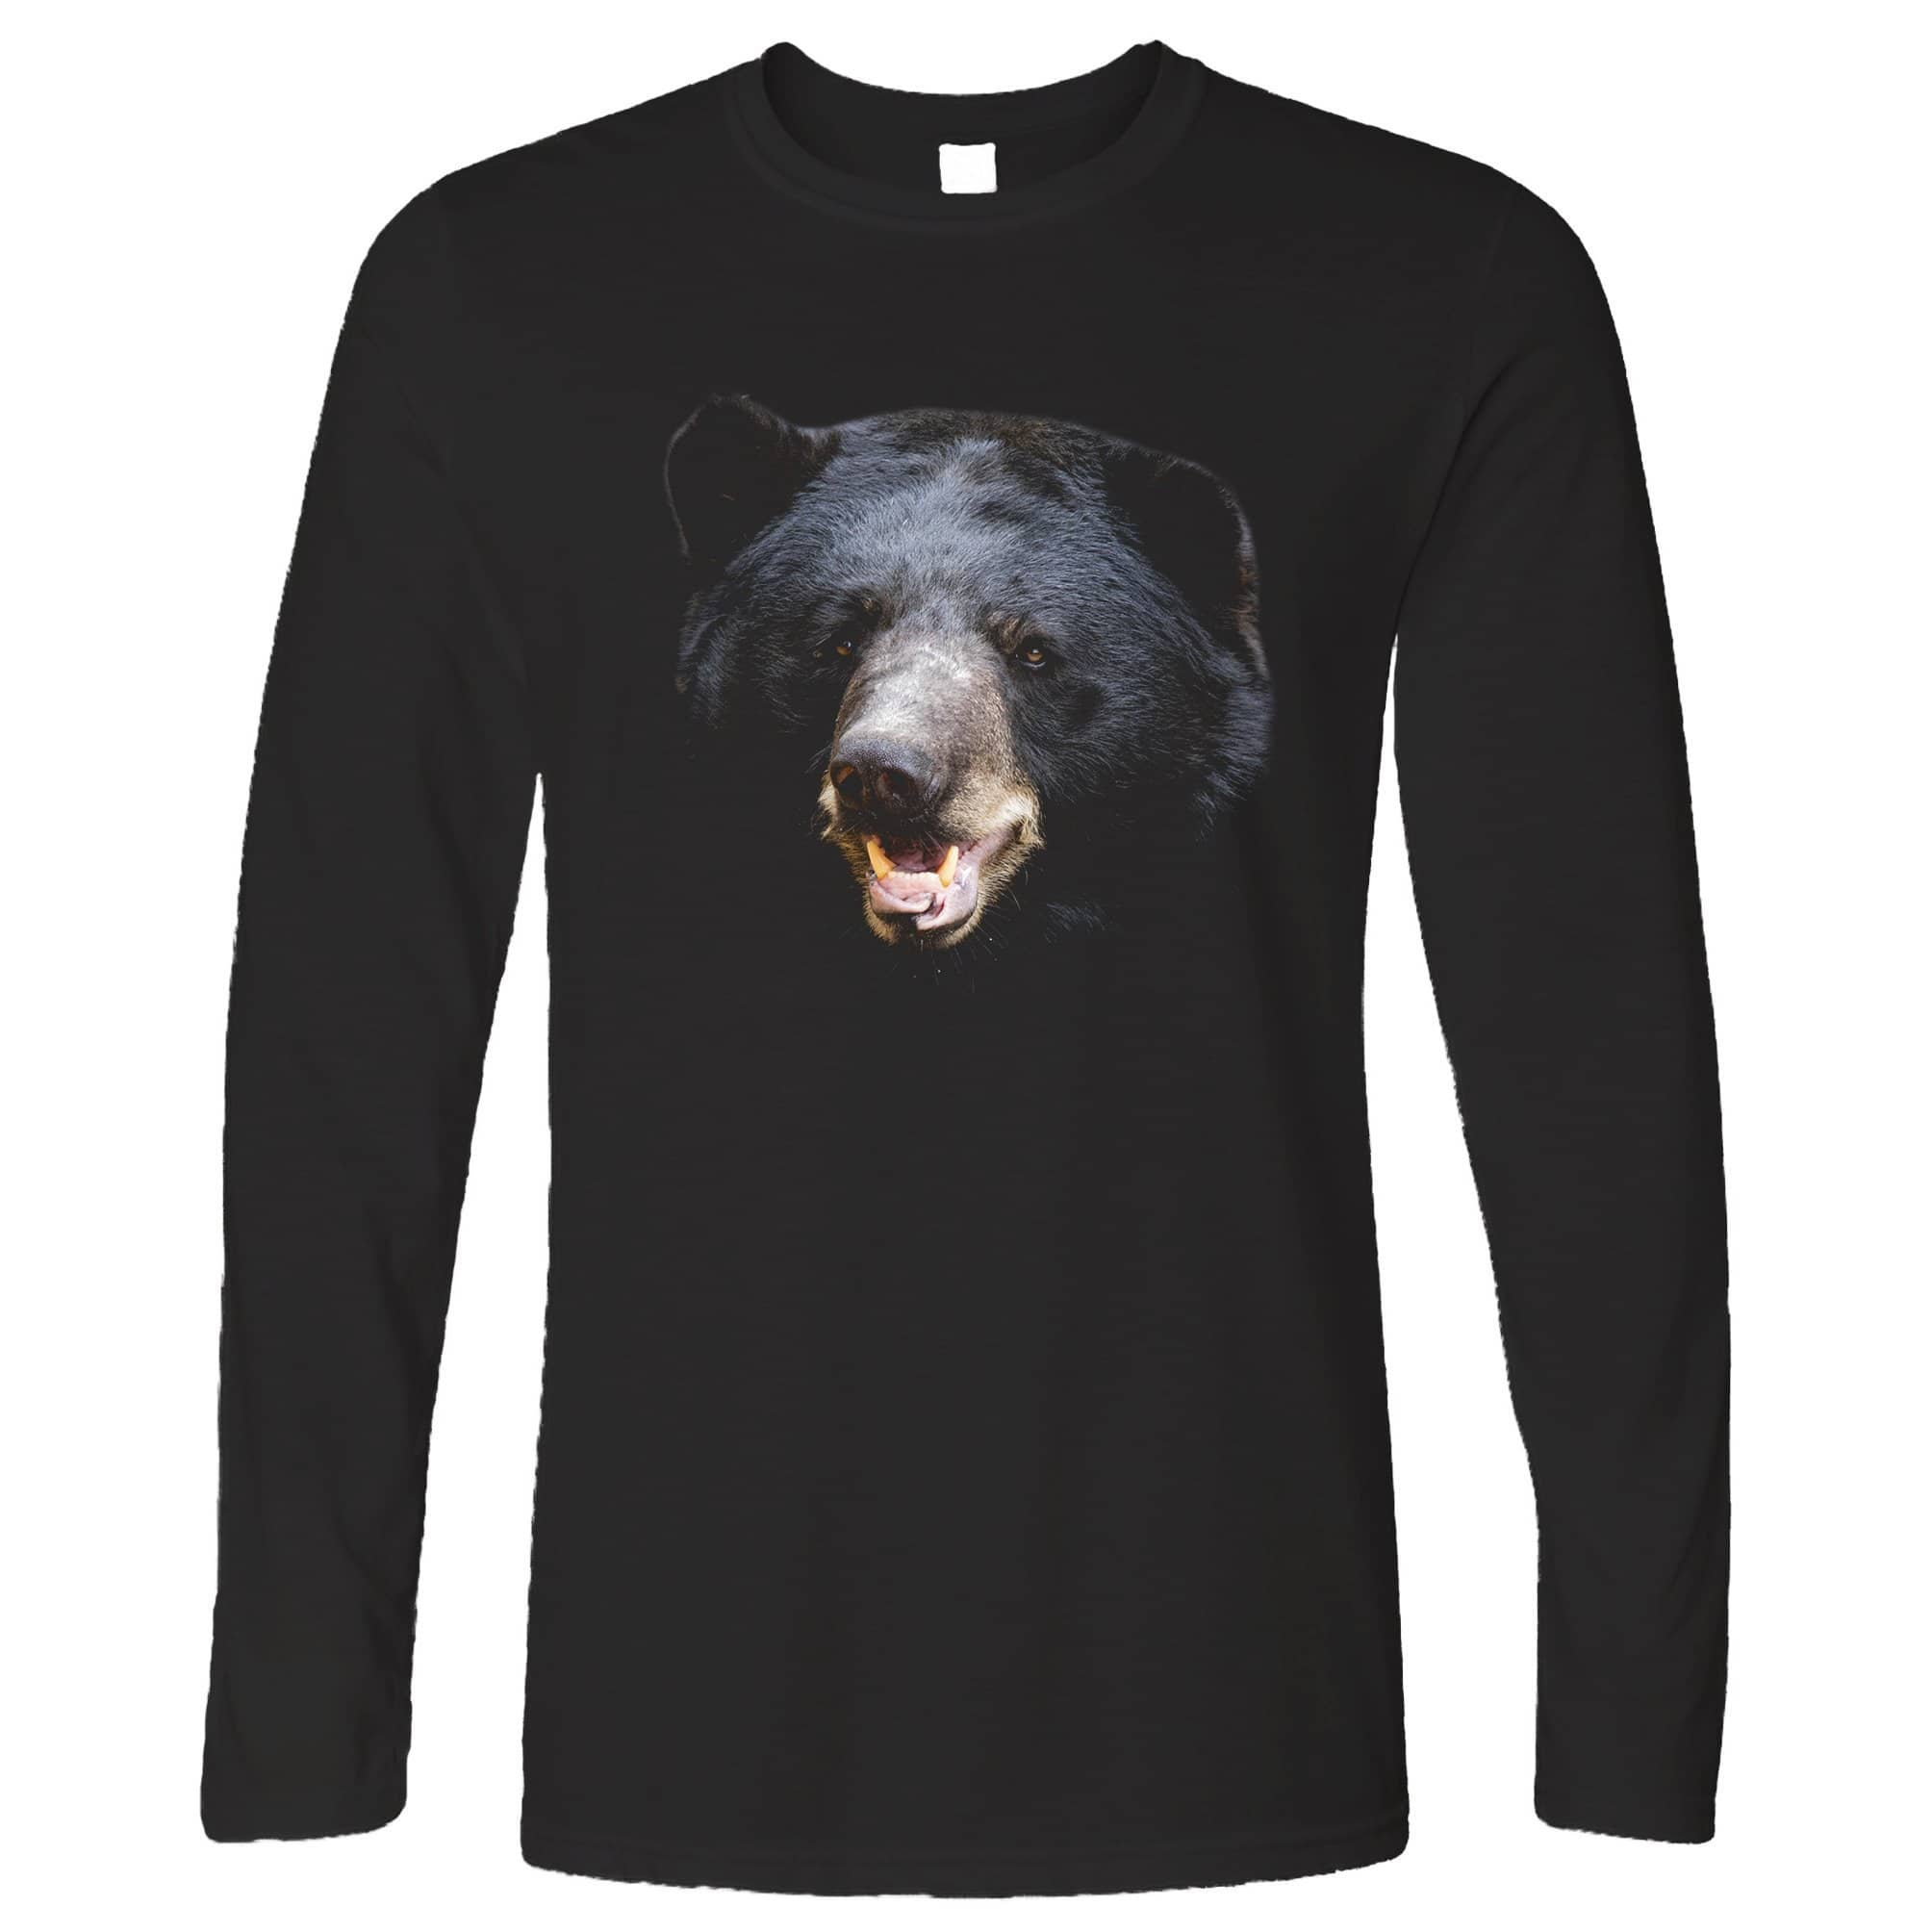 Bear Face Long Sleeve Powerful Black-Bear Head T-Shirt